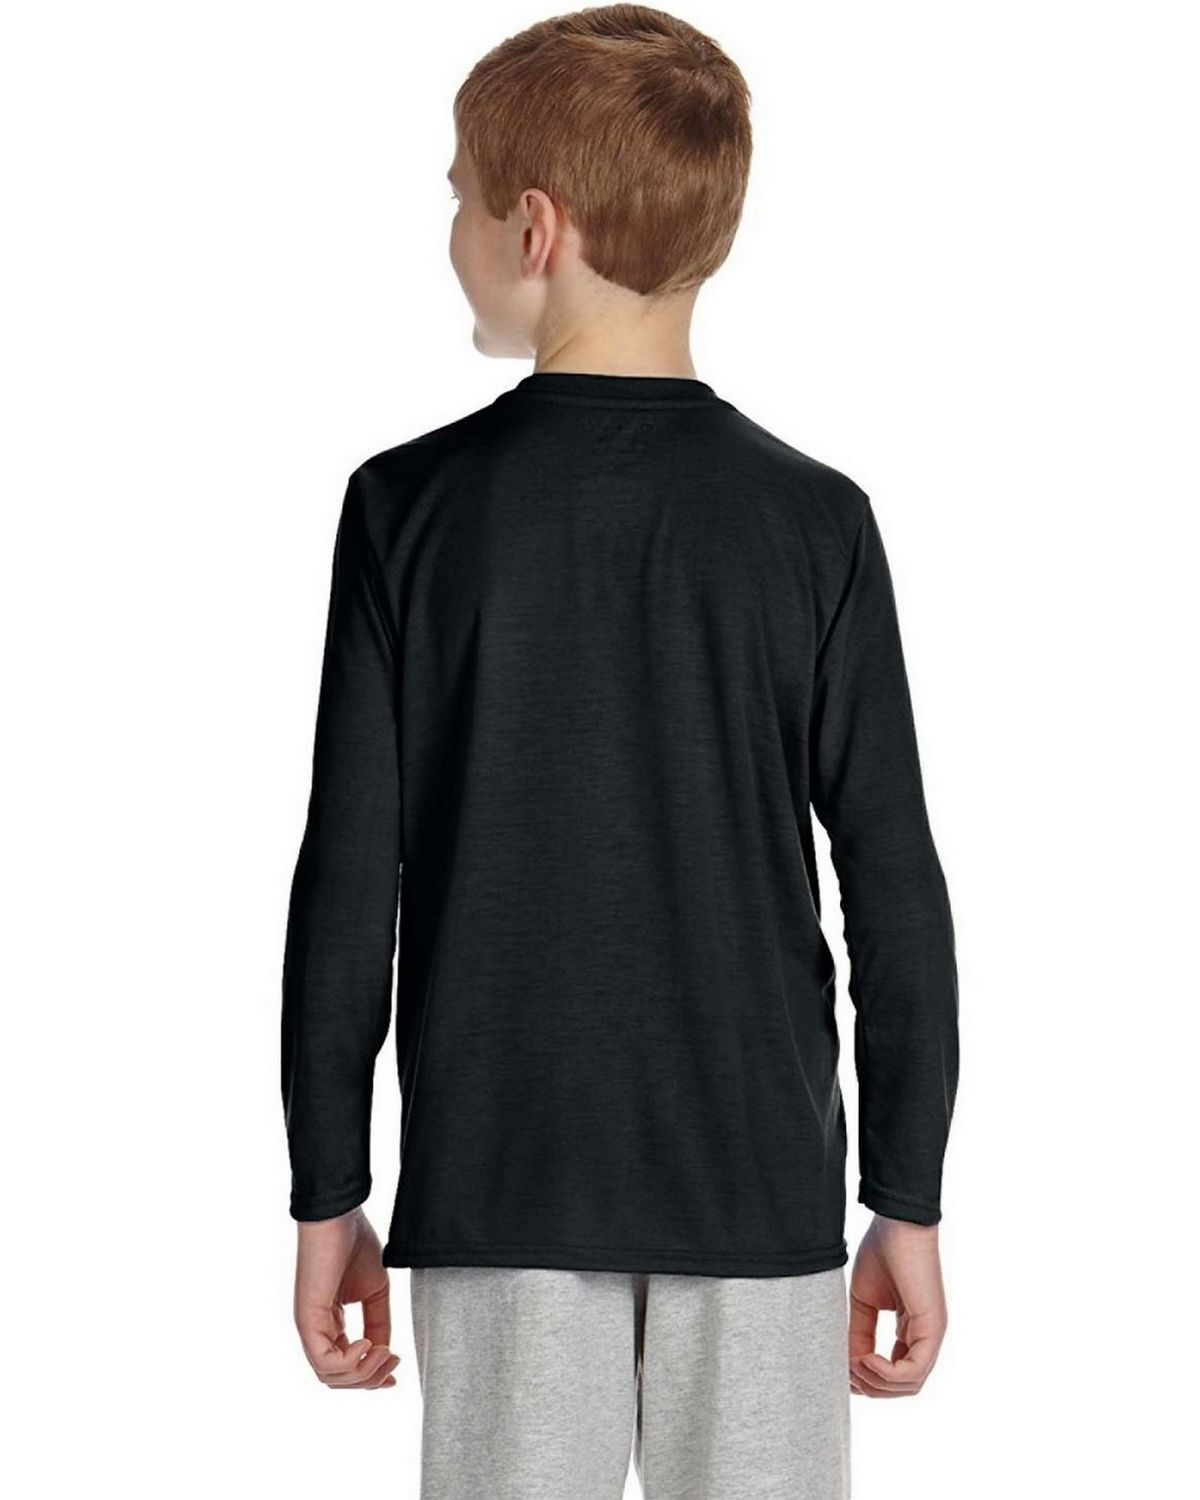 Gildan g424b youth performance long sleeve t shirt size for Gildan brand t shirt size chart